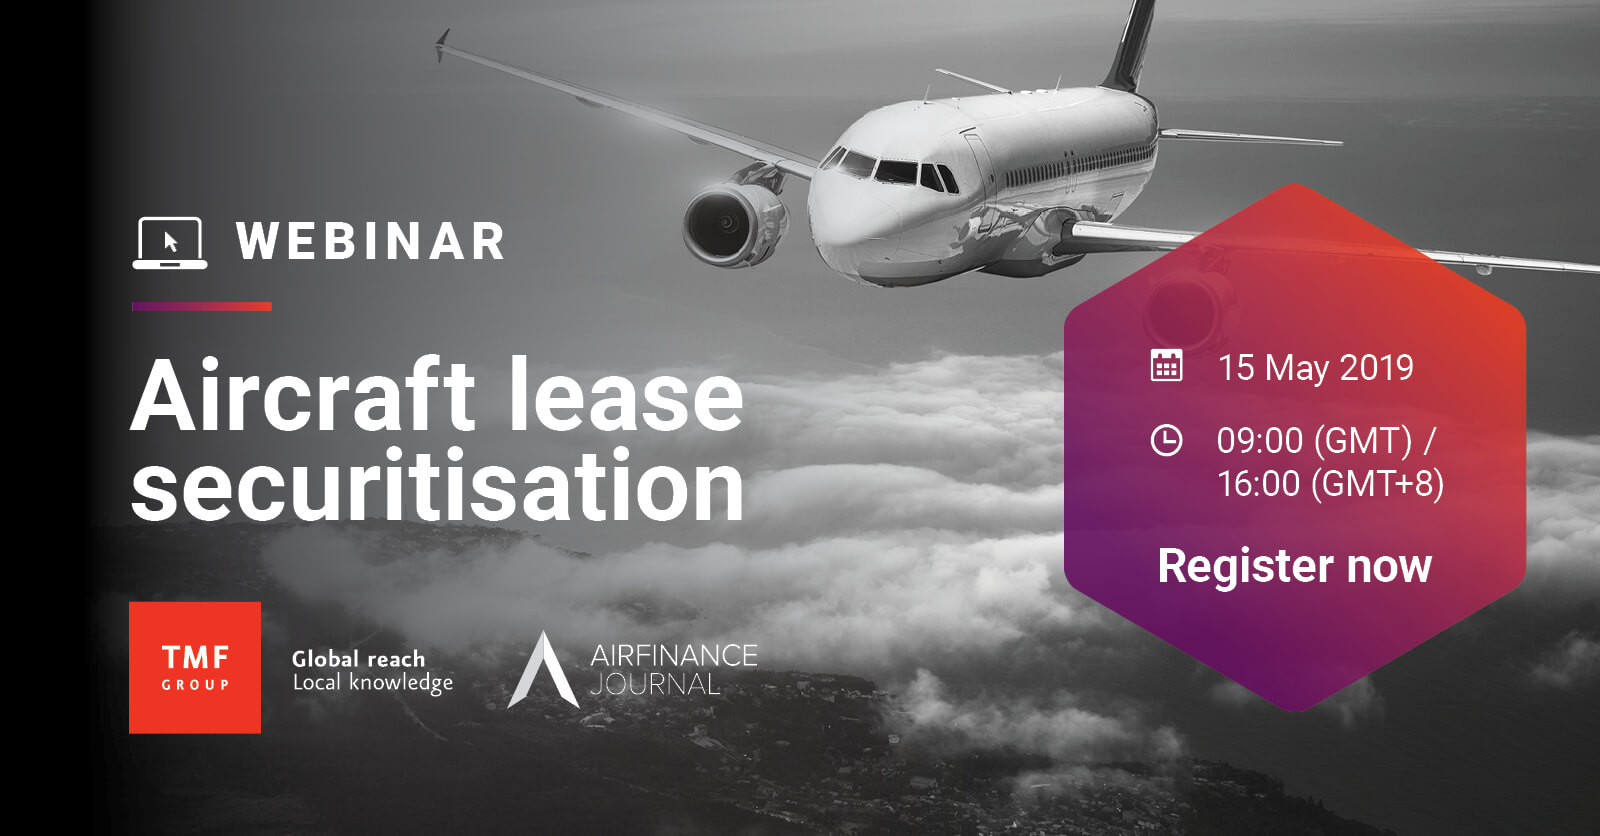 webinar aircraft lease securitisation